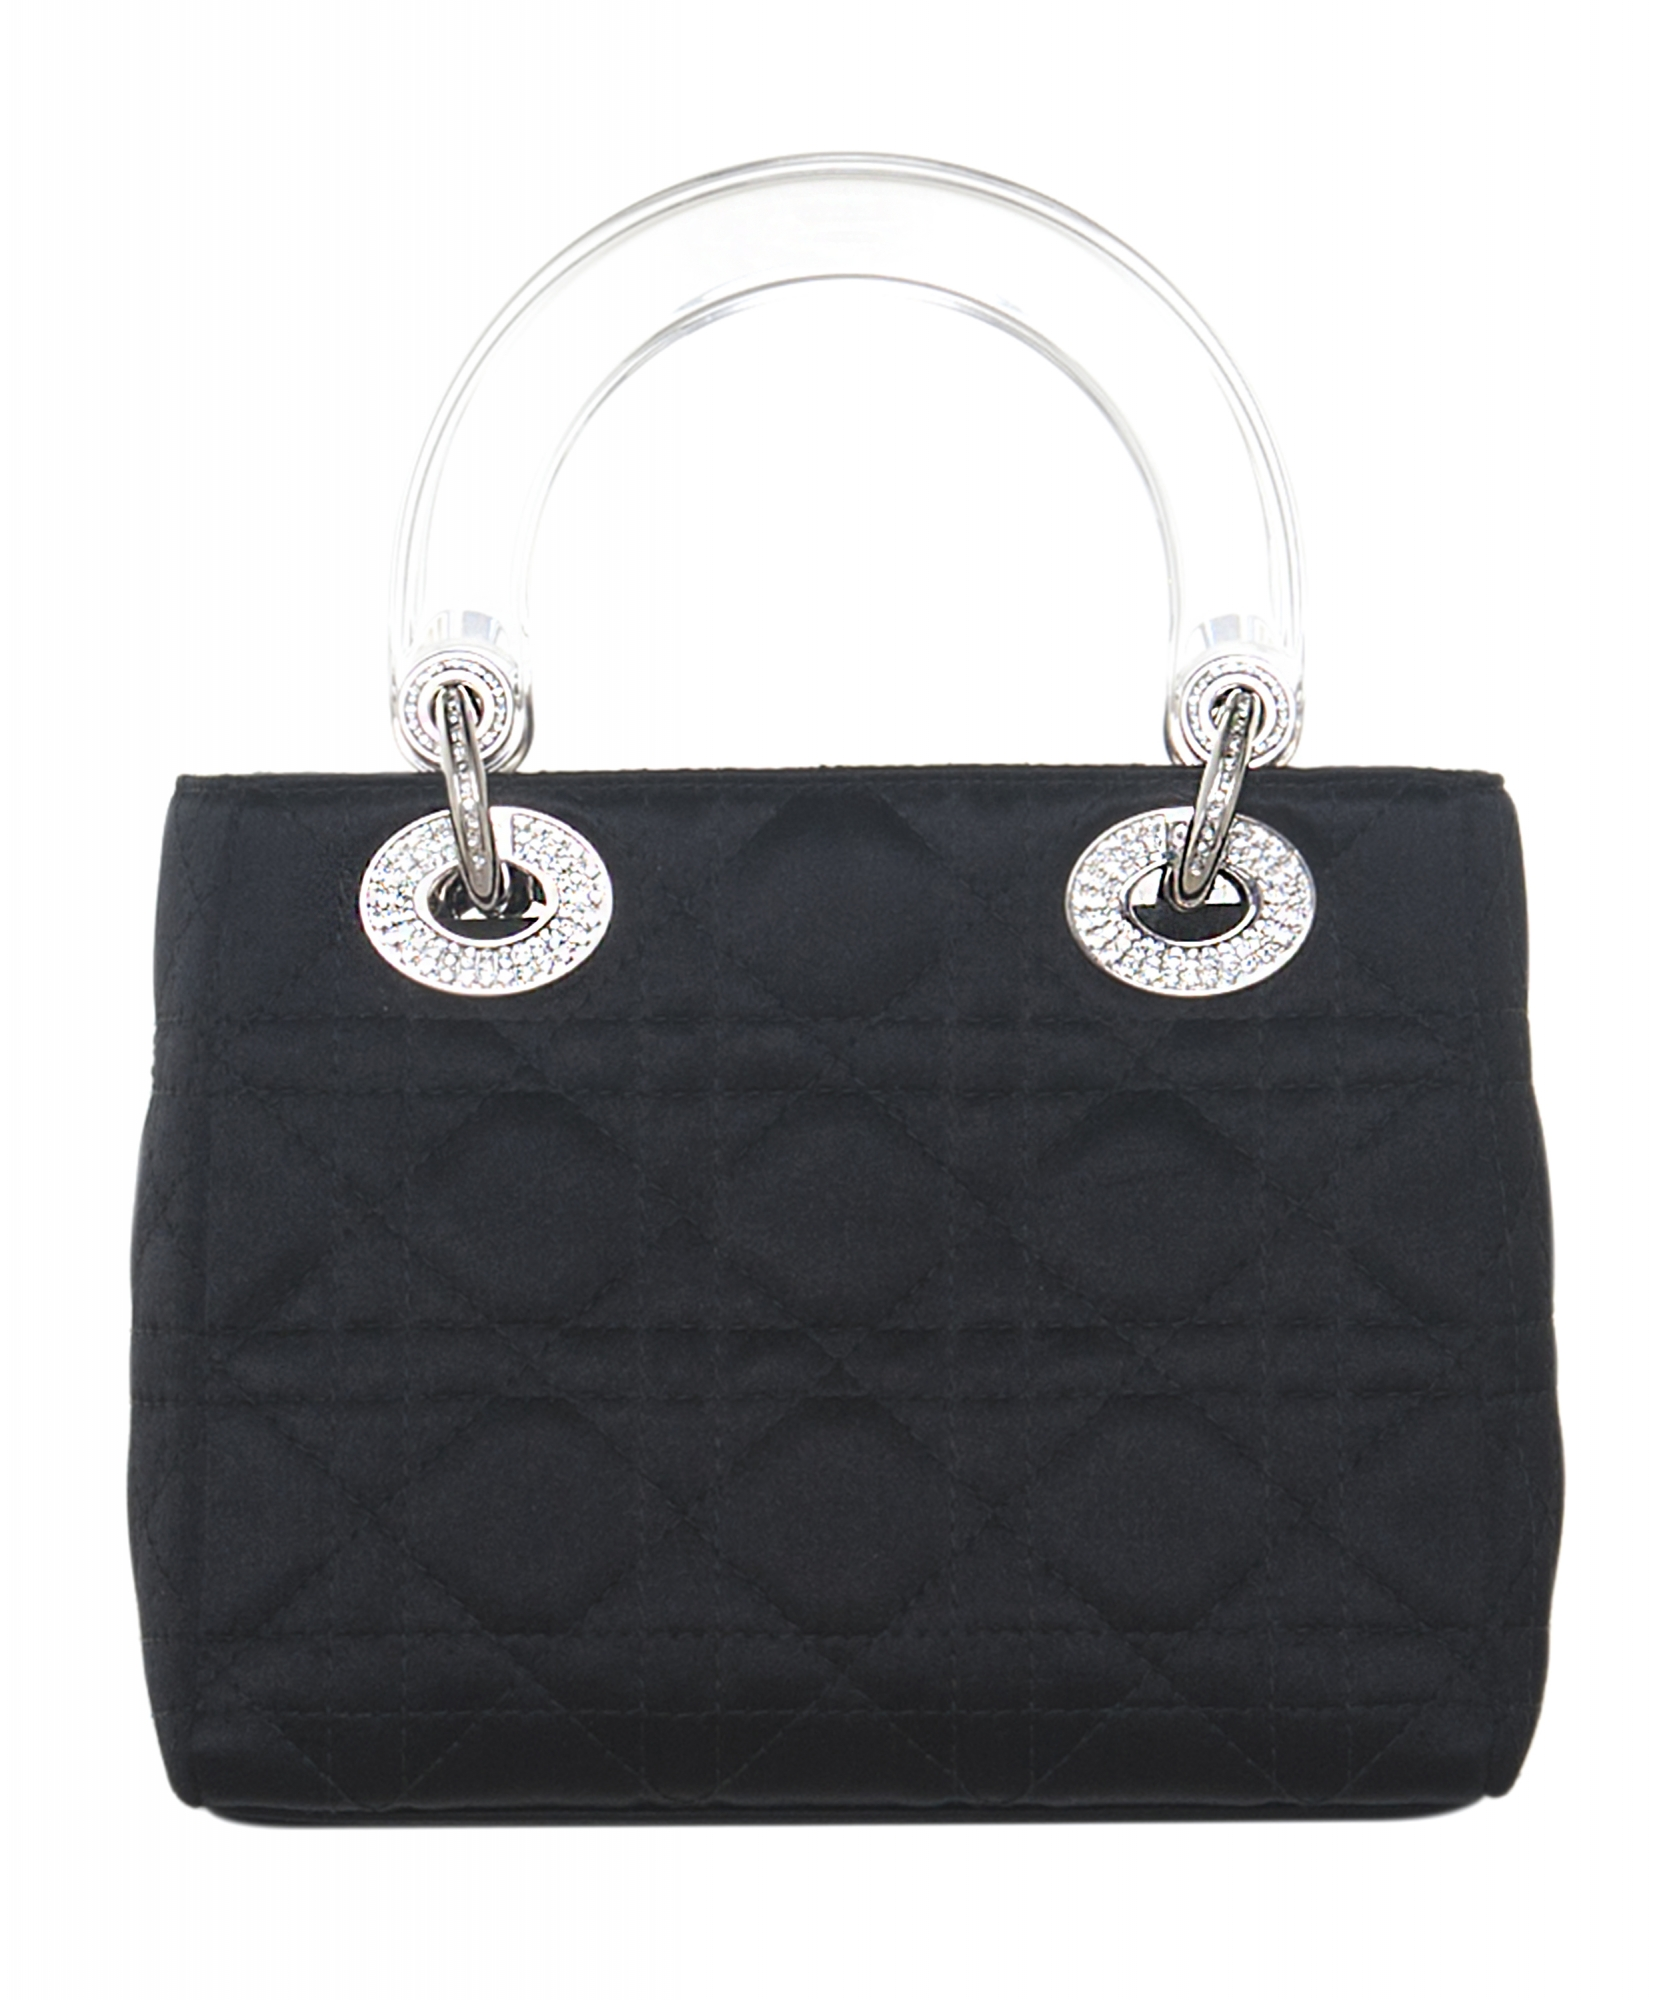 7fbf2638e4 Christian Dior Mini Satin 'Lady Dior' Bag | La Doyenne